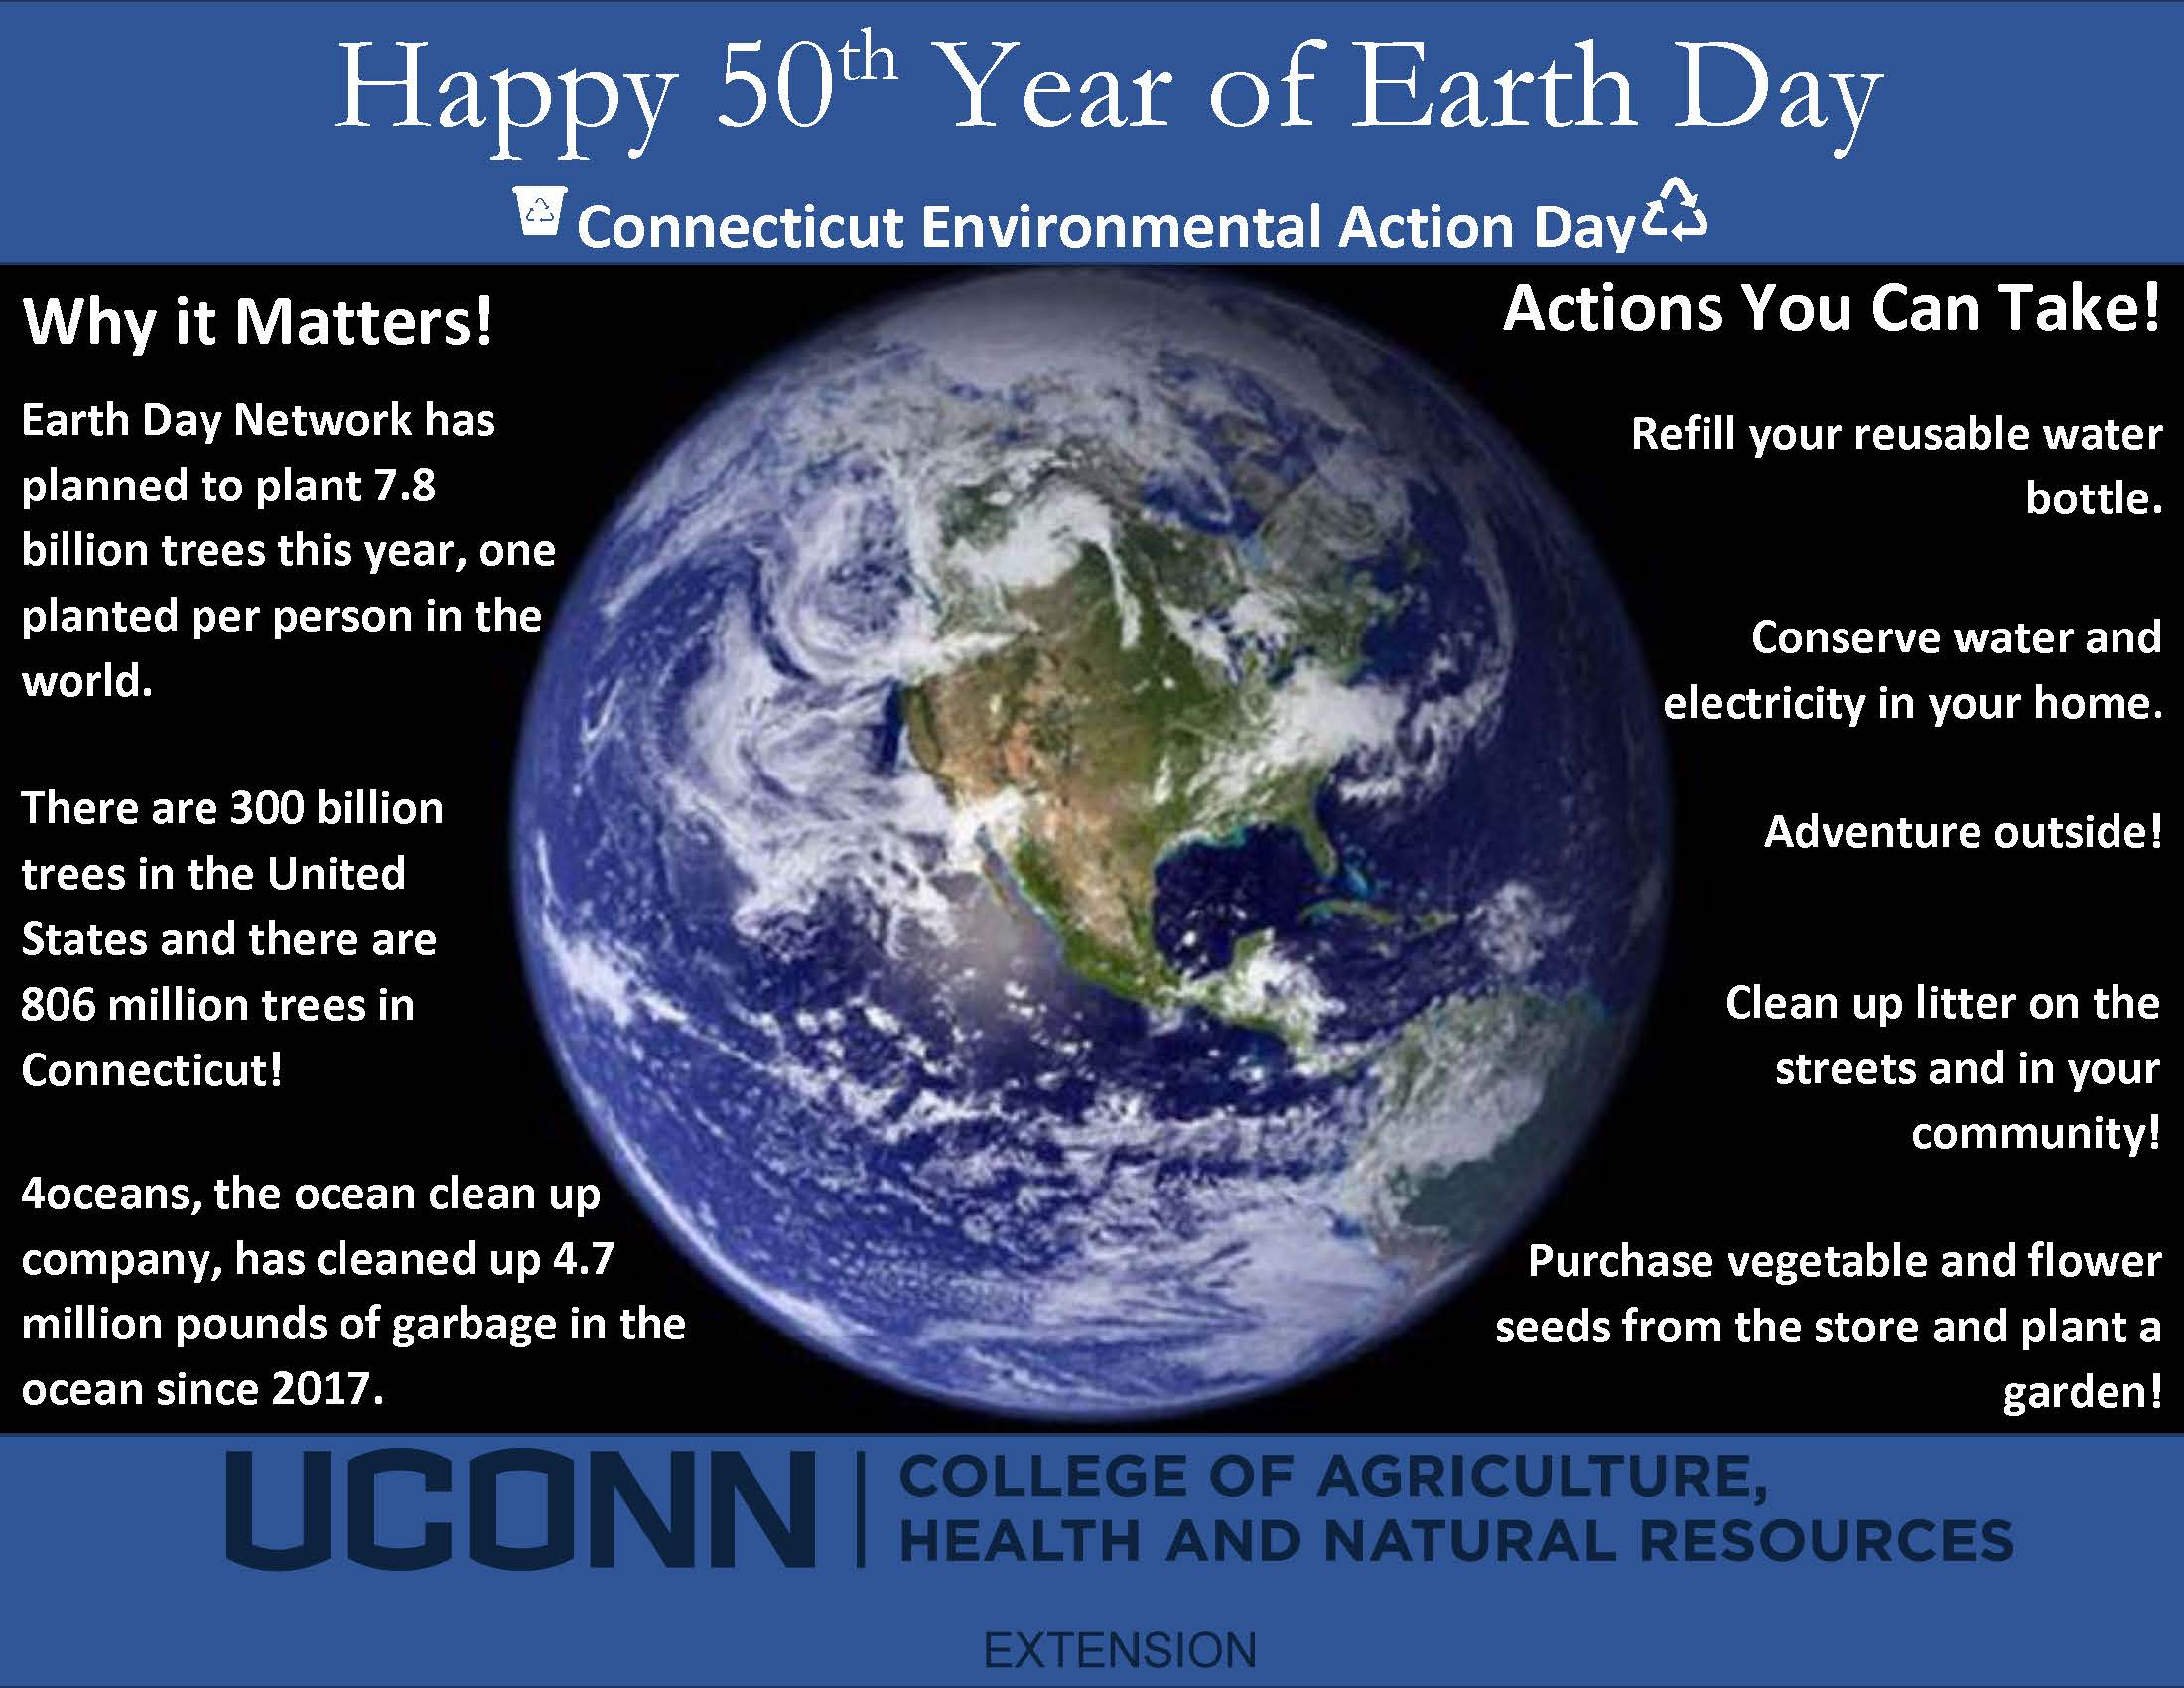 Earth Day advertising/information